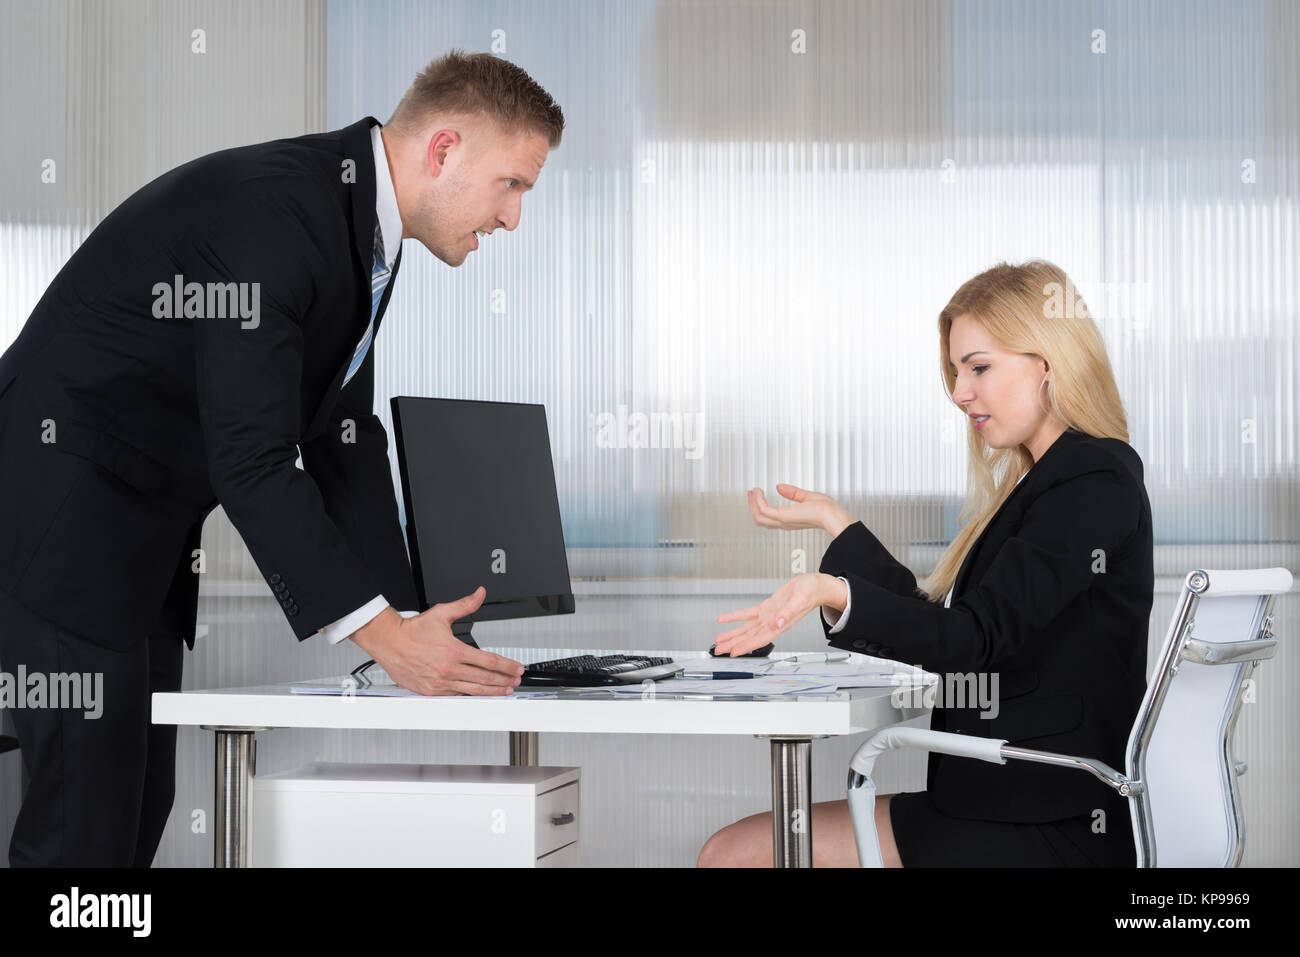 Businessman Blaming Employee In Office - Stock Image